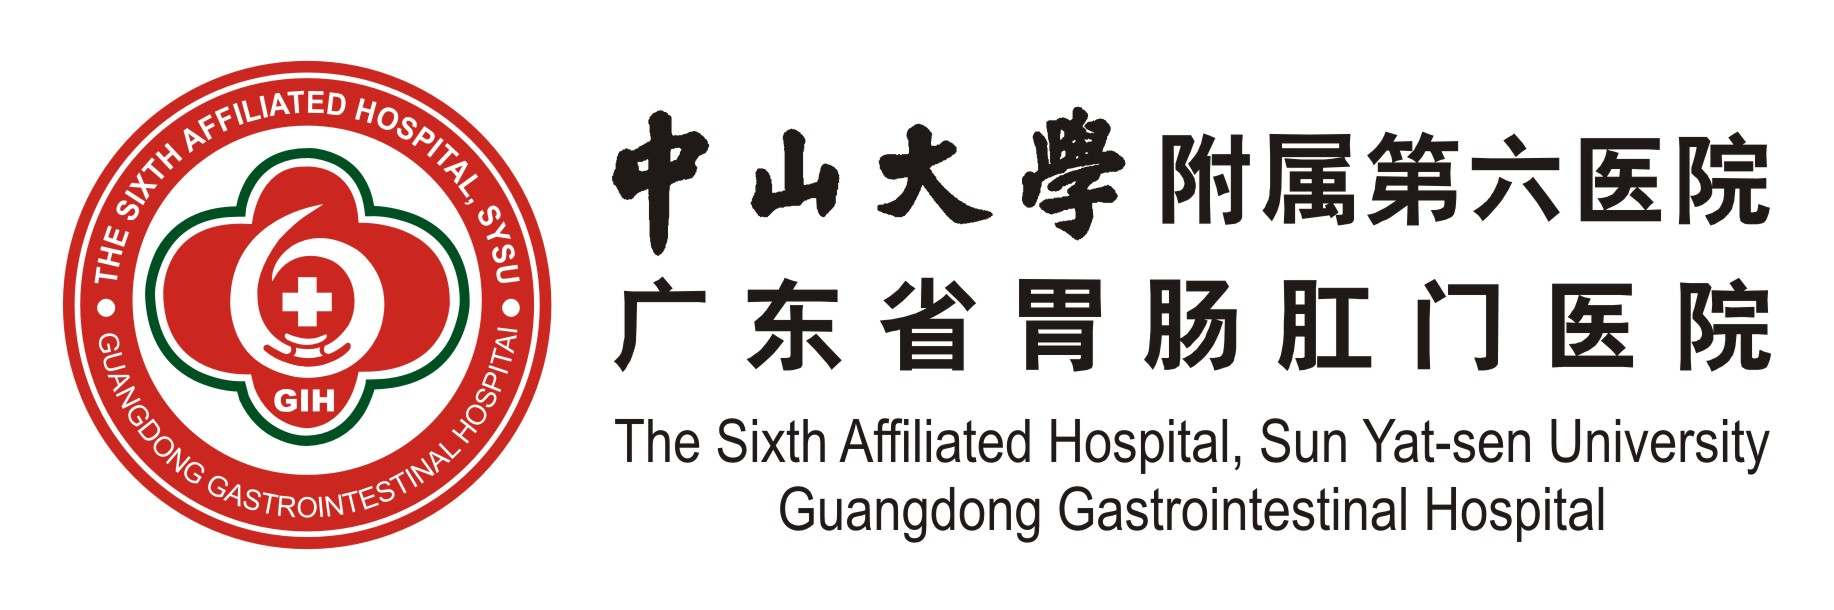 The Sixth Affiliated Hospital, Sun Yat-sen University